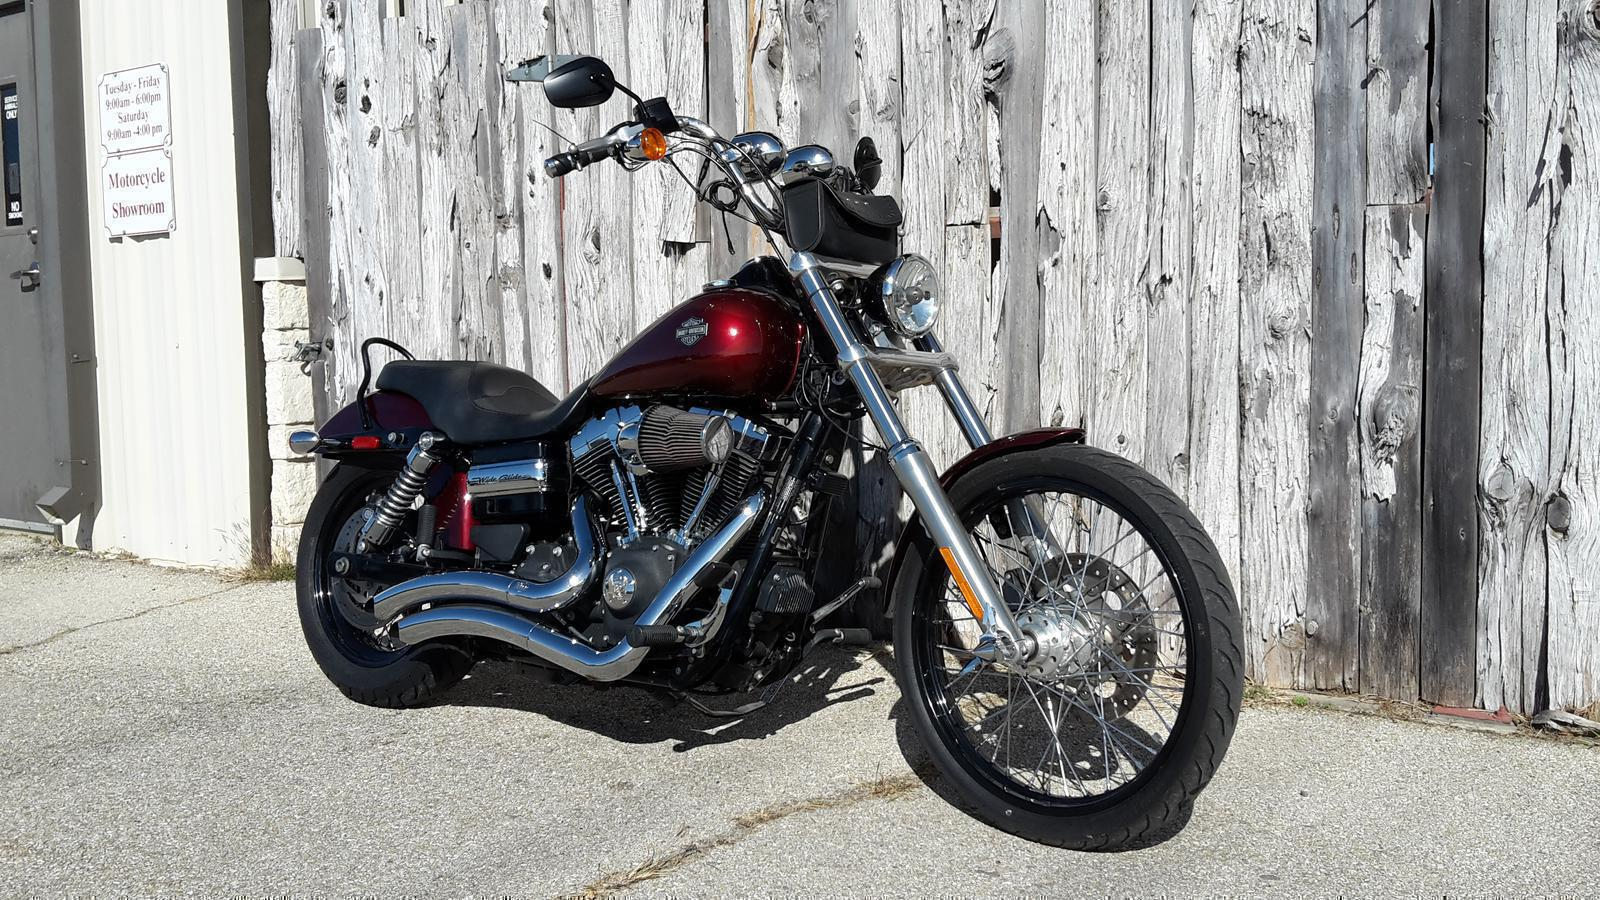 2015 harley davidson fxdwg dyna wide glide for sale in waco tx 2015 harley davidson fxdwg dyna wide glide for sale in waco tx legend cycles 254 752 3302 fandeluxe Image collections